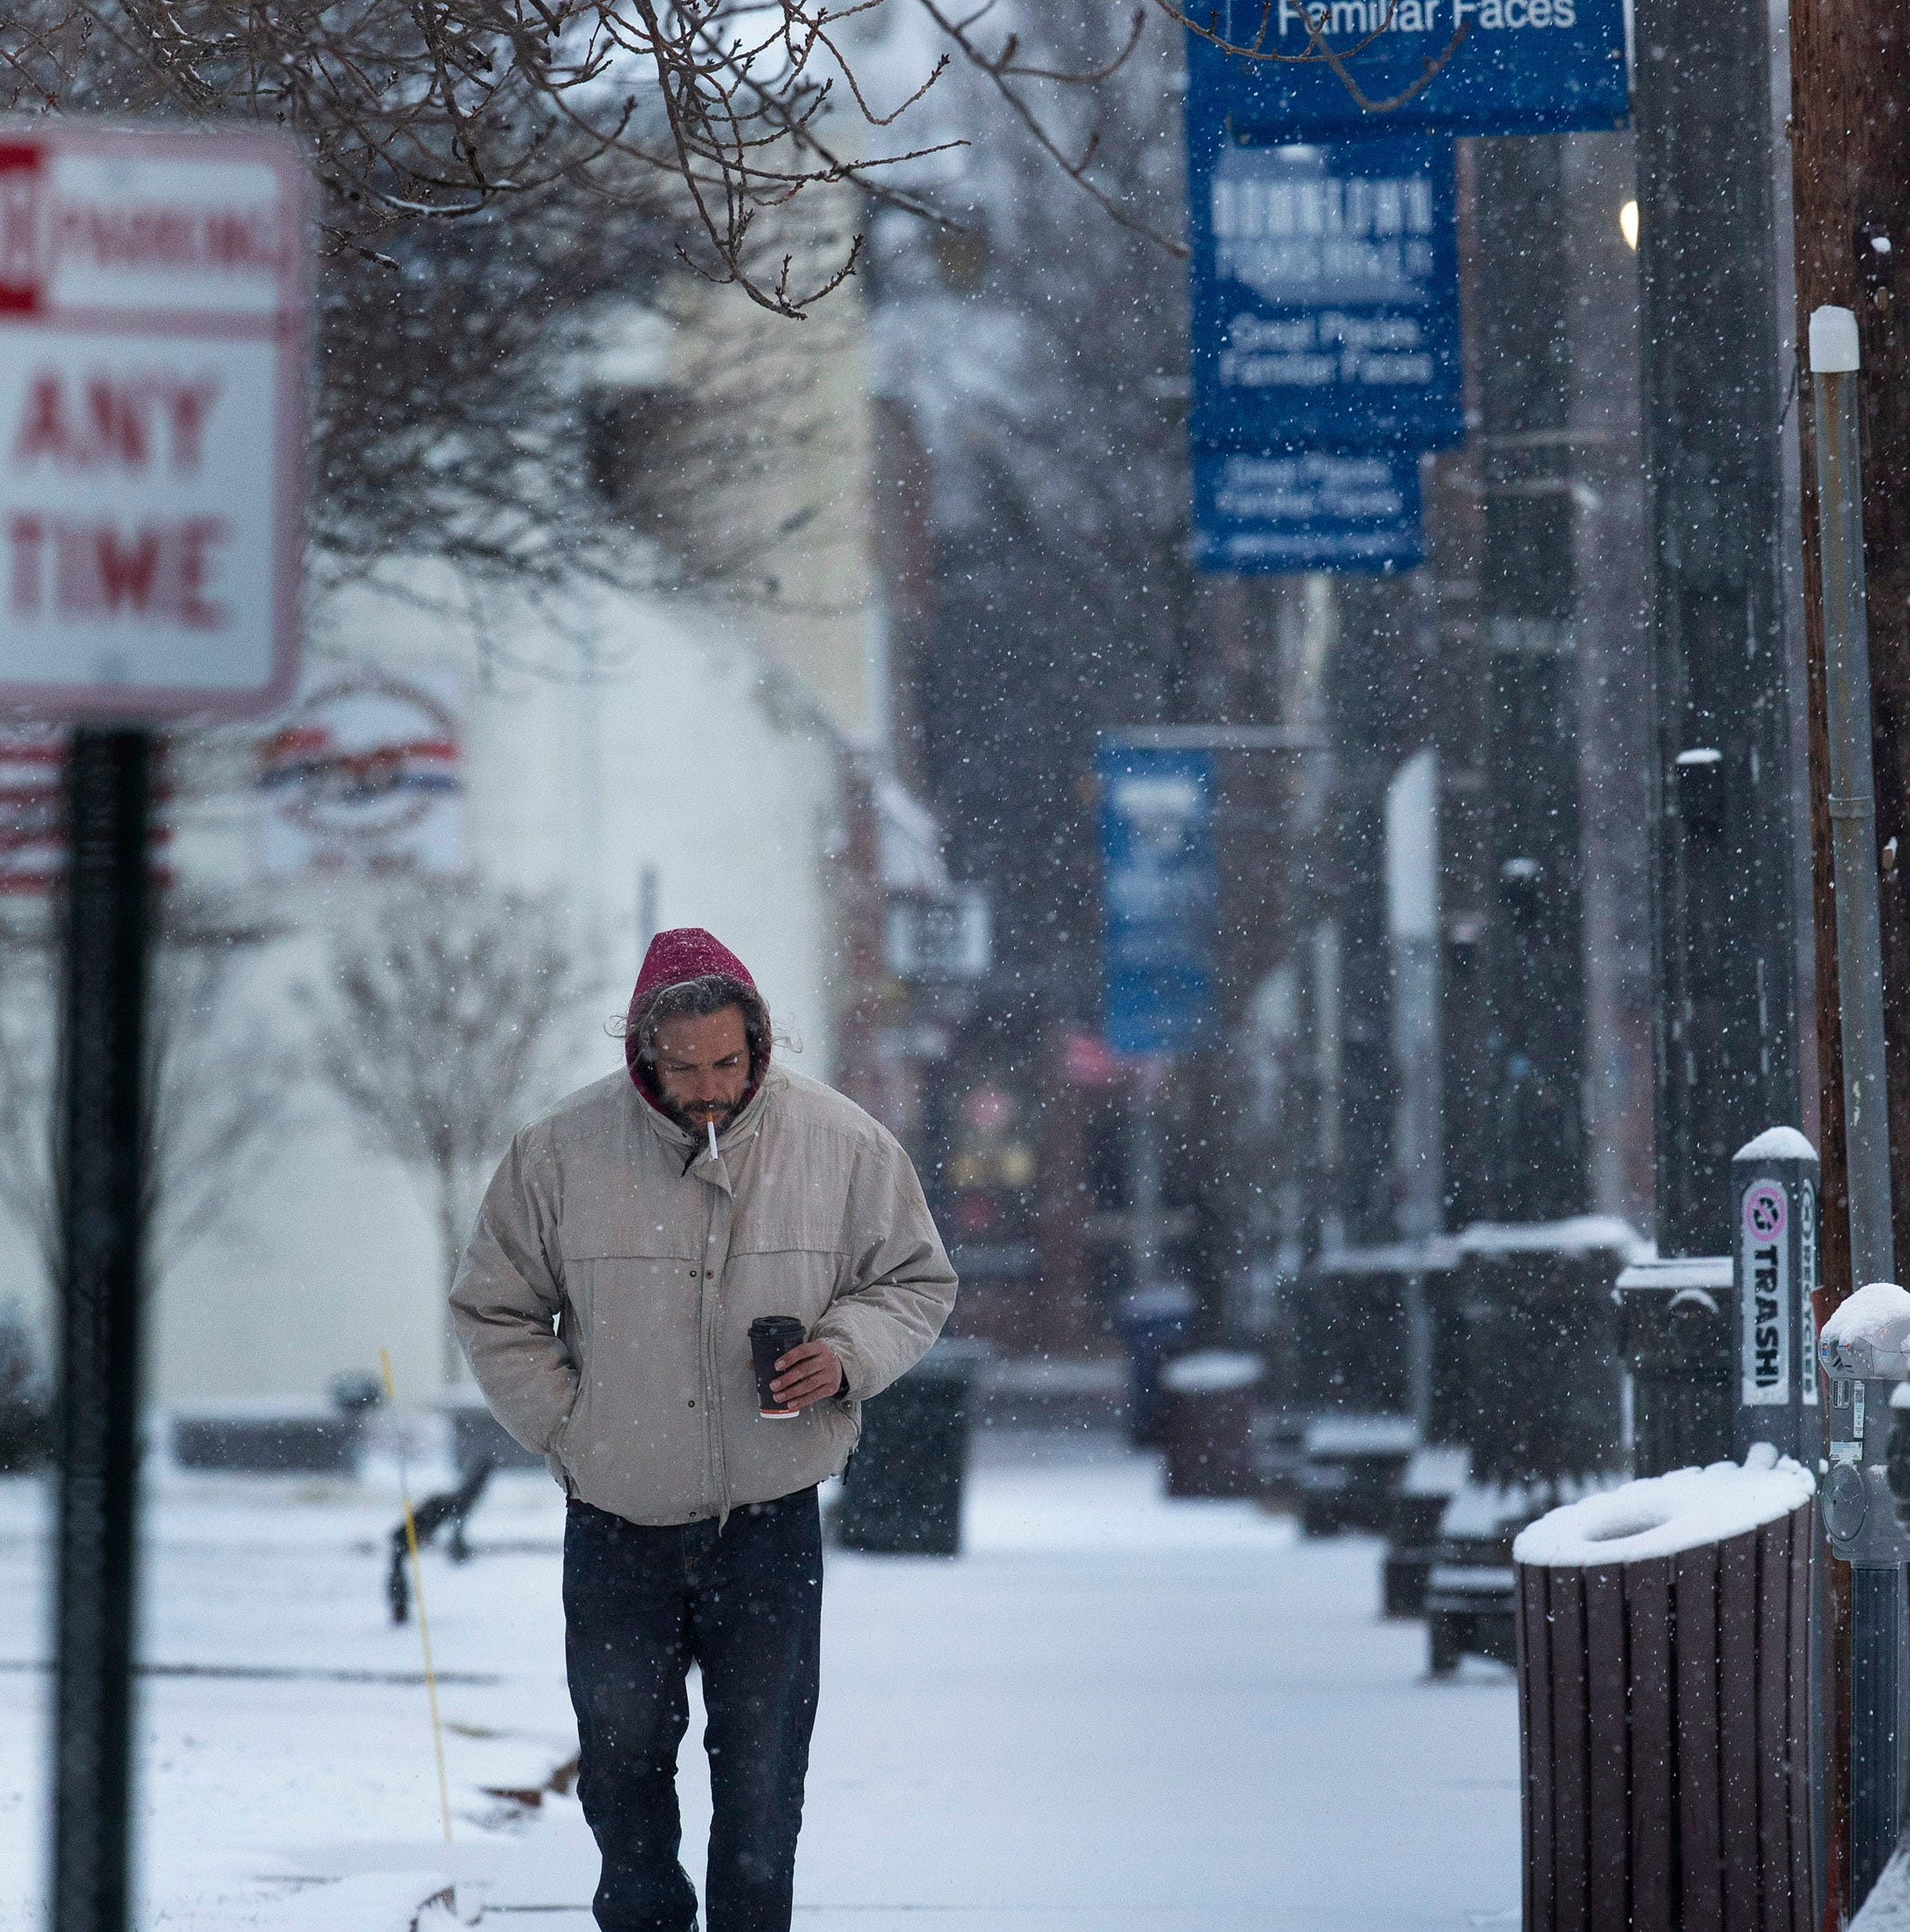 NJ weather: Want snowfall totals? Sorry, there's a government shutdown